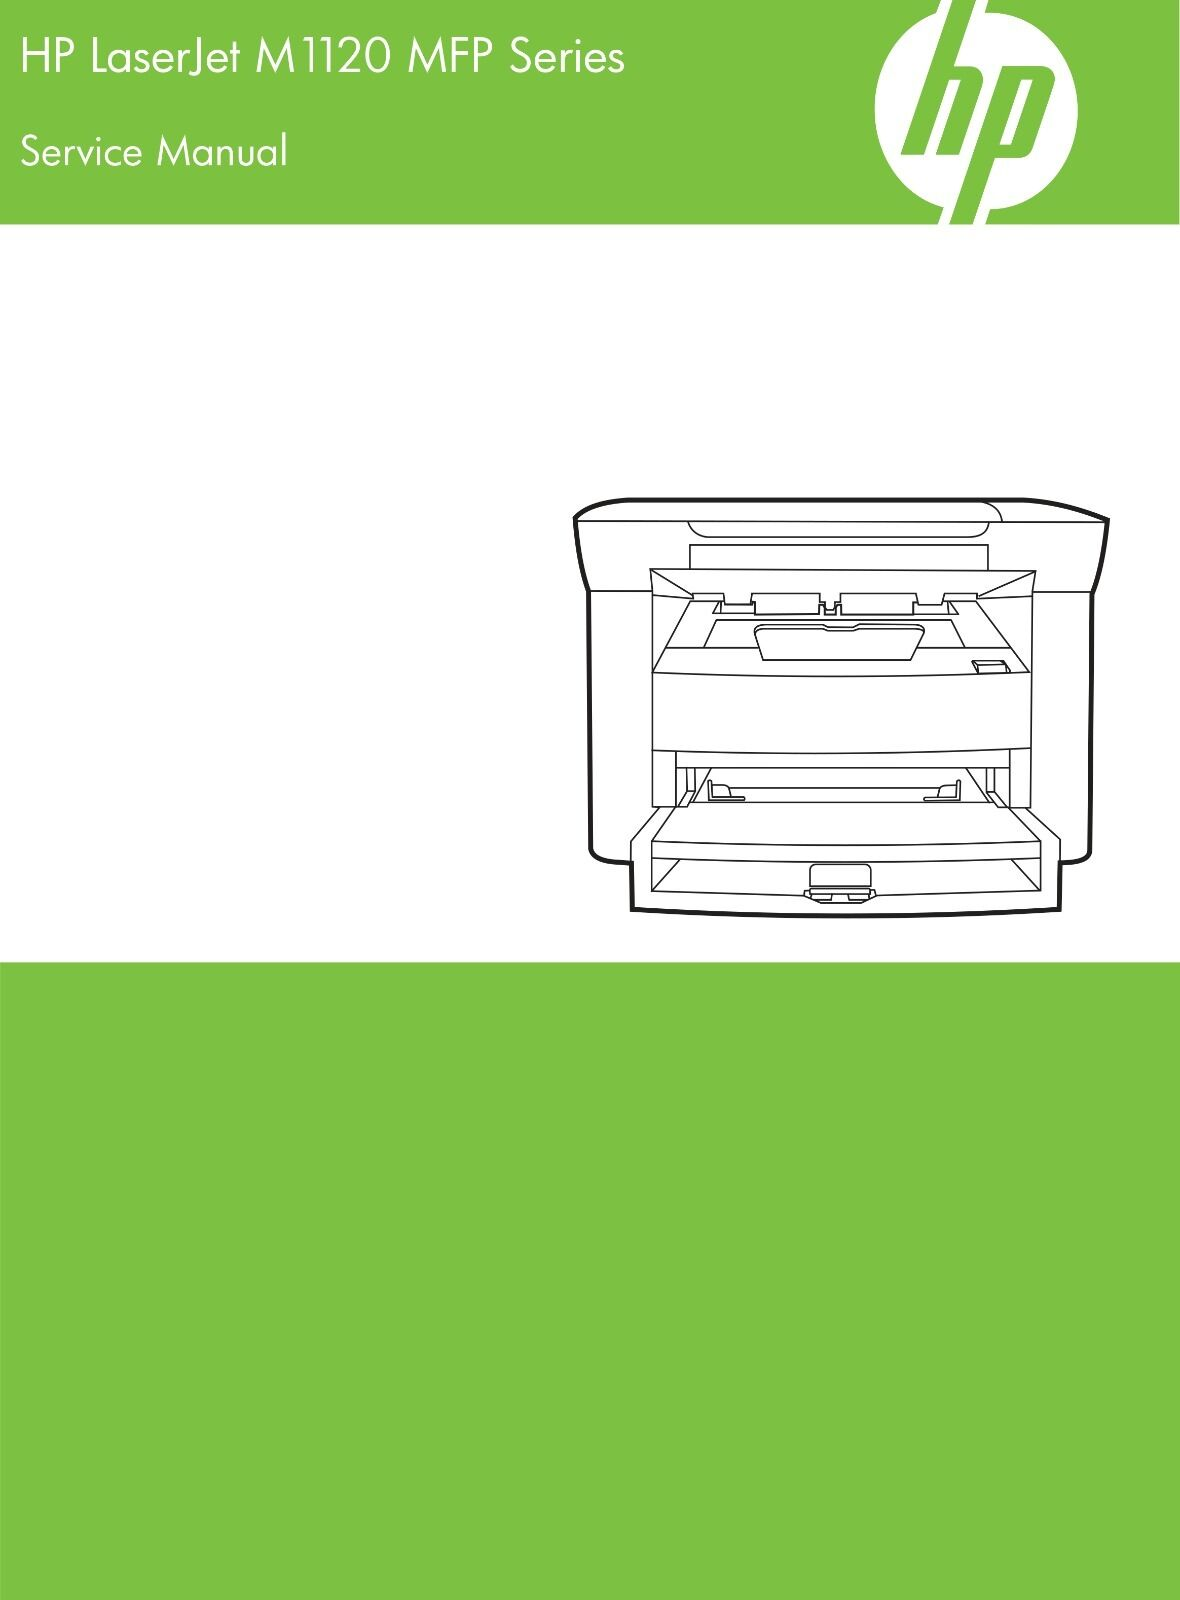 HP LaserJet M1120 MFP - Service Manual PDF 1 of 4Only 1 available ...